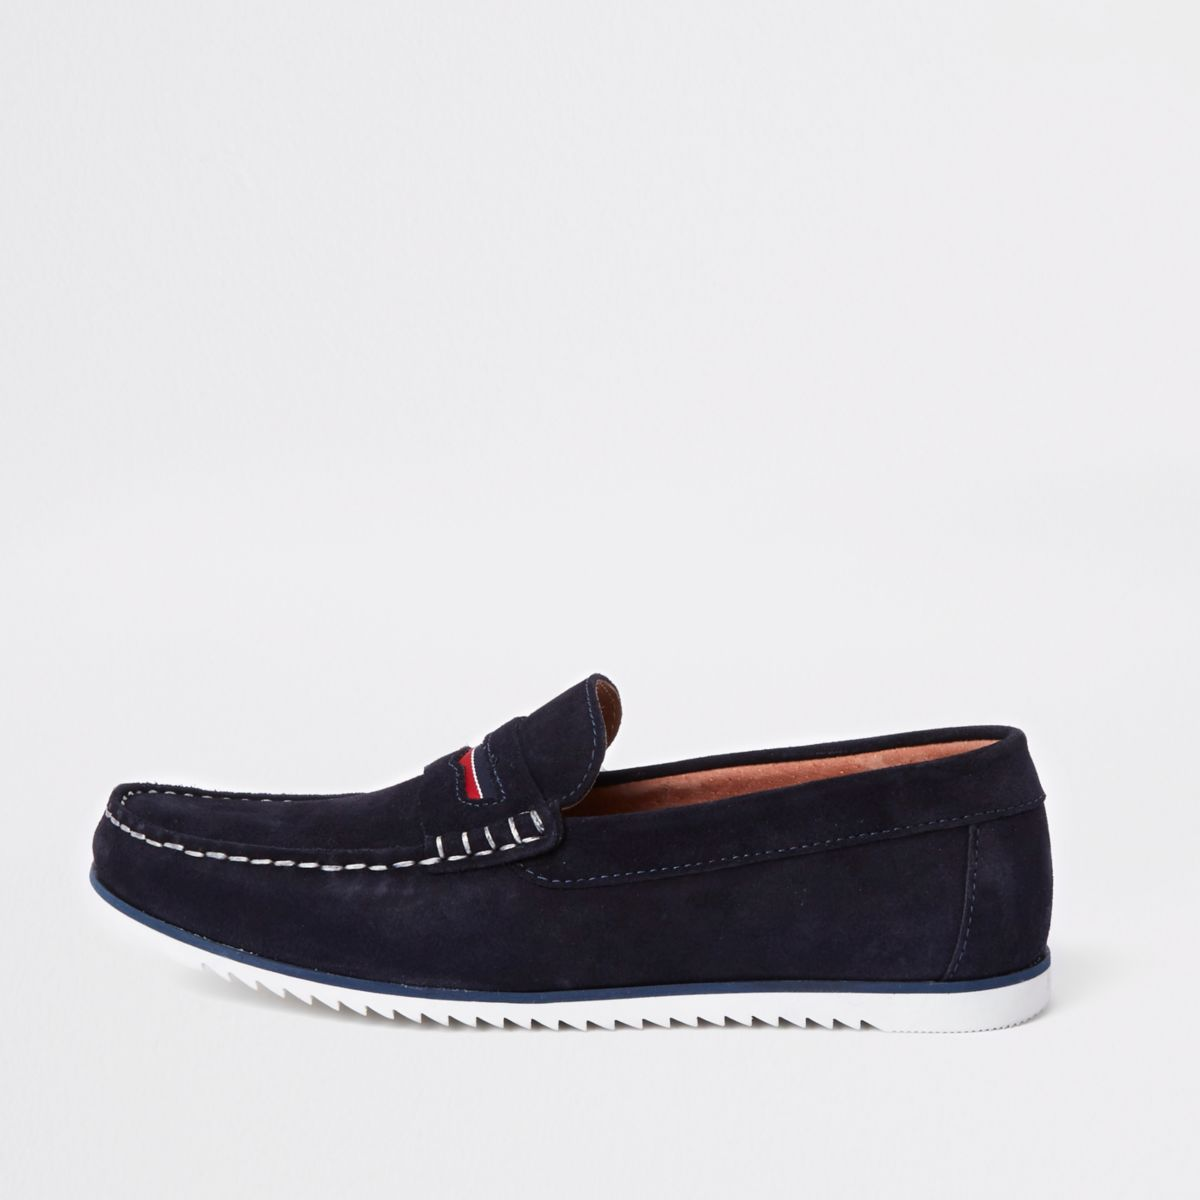 Navy suede slip on loafers